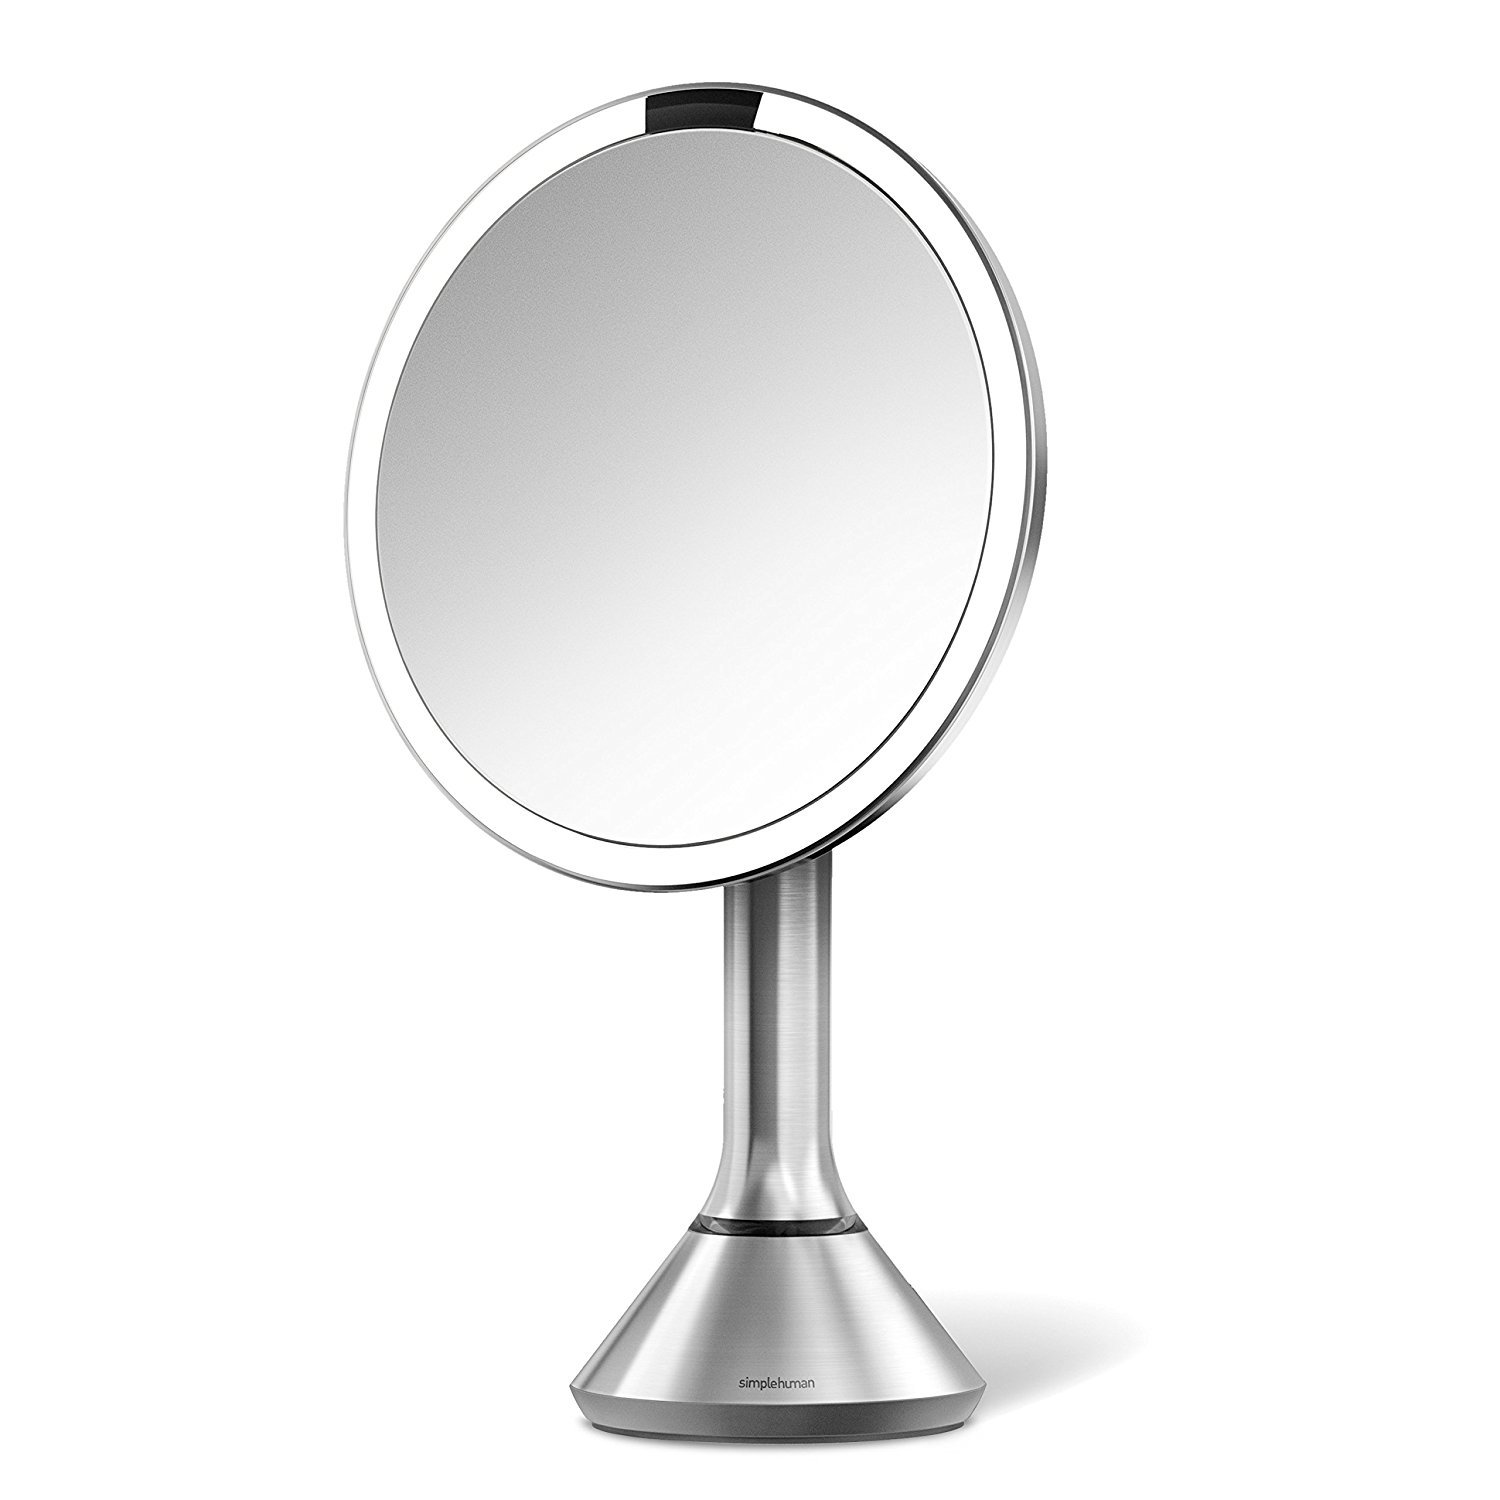 Simplehuman 8-inch Sensor Lighted Mirror